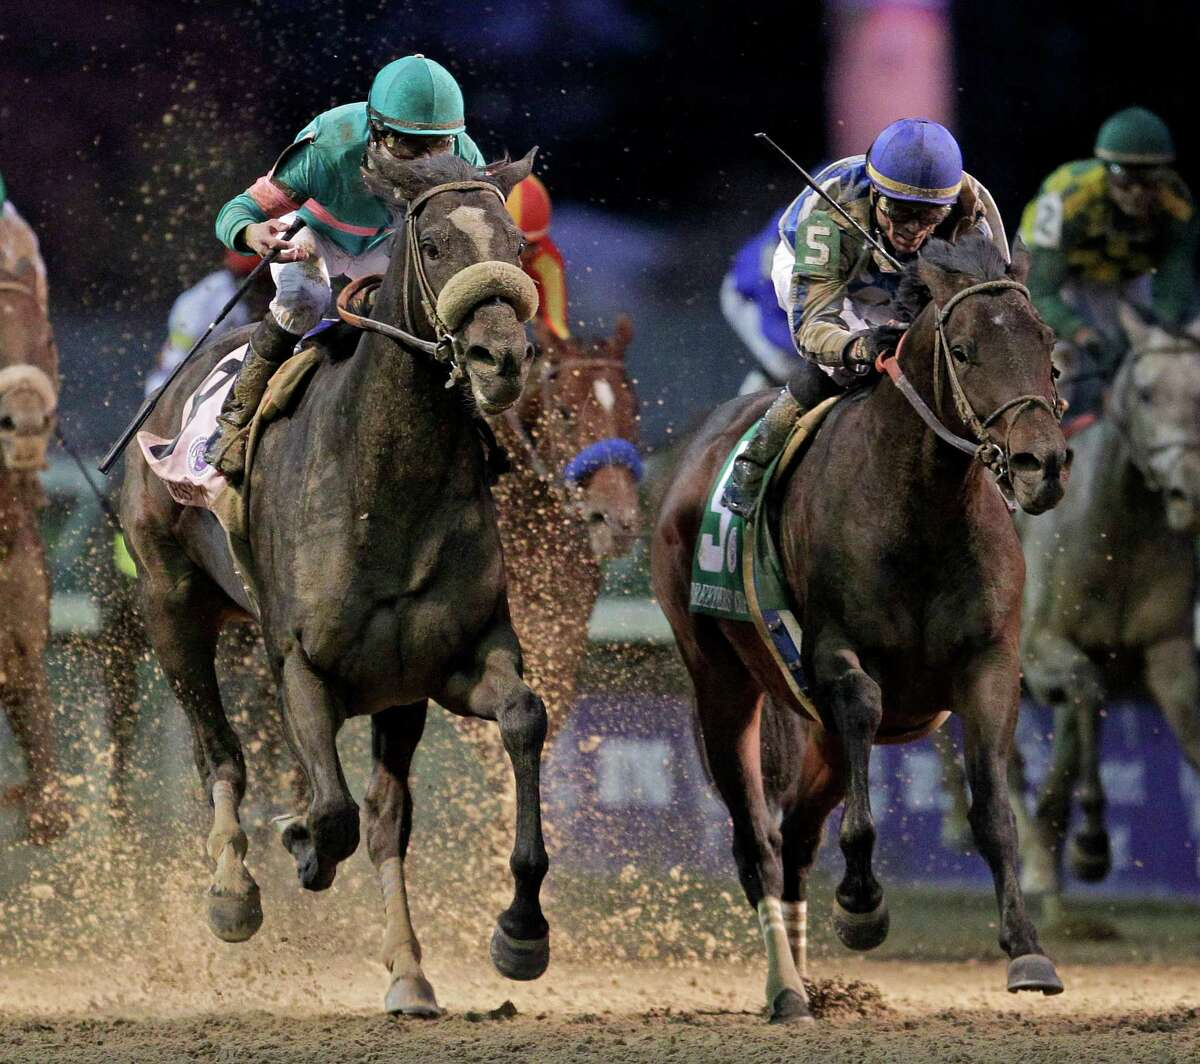 FILE - In this Nov. 6, 2010 file photo, Garrett Gomez, right, rides Blame to victory ahead of Zenyatta , ridden by Mike Smith, who finished second, in the Breeders' Cup Classic horse races at Churchill Downs. Both horses are among the finalists for the Eclipse Award's Horse of the Year, which will be handed out on Jan. 17, 2011. (AP Photo/Darron Cummings, File)